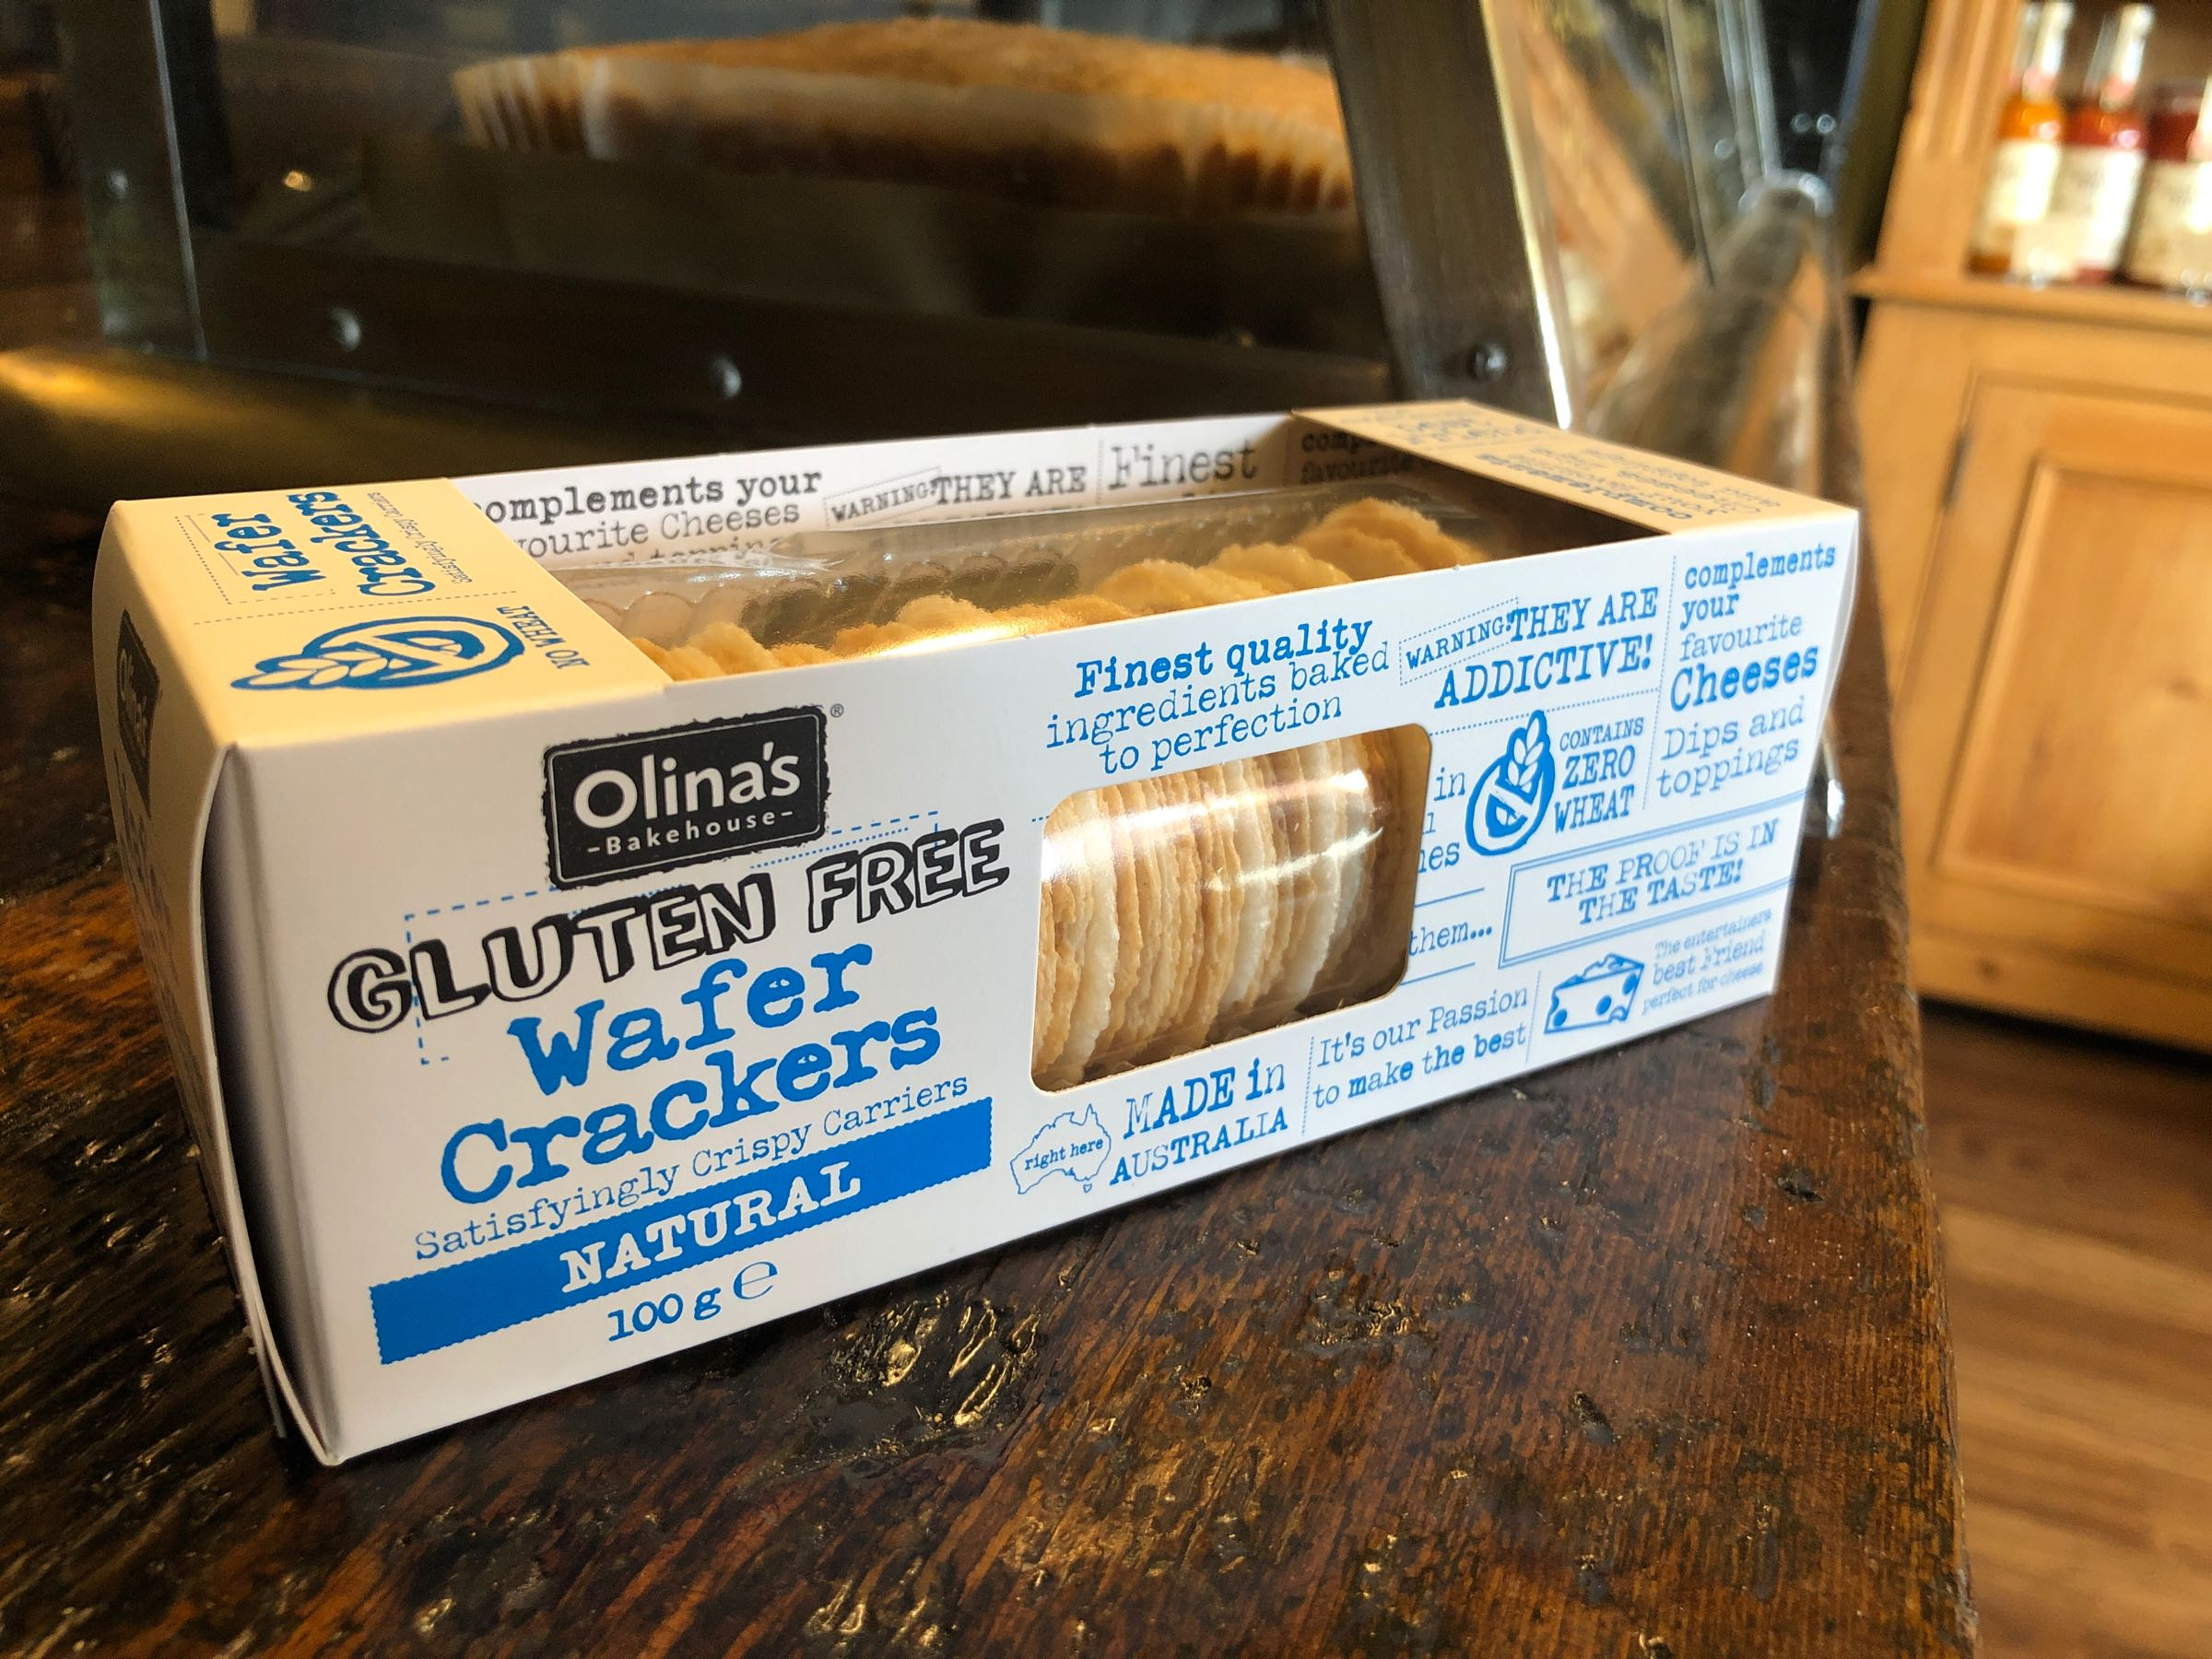 Olina's Gluten Free Wafer Crackers